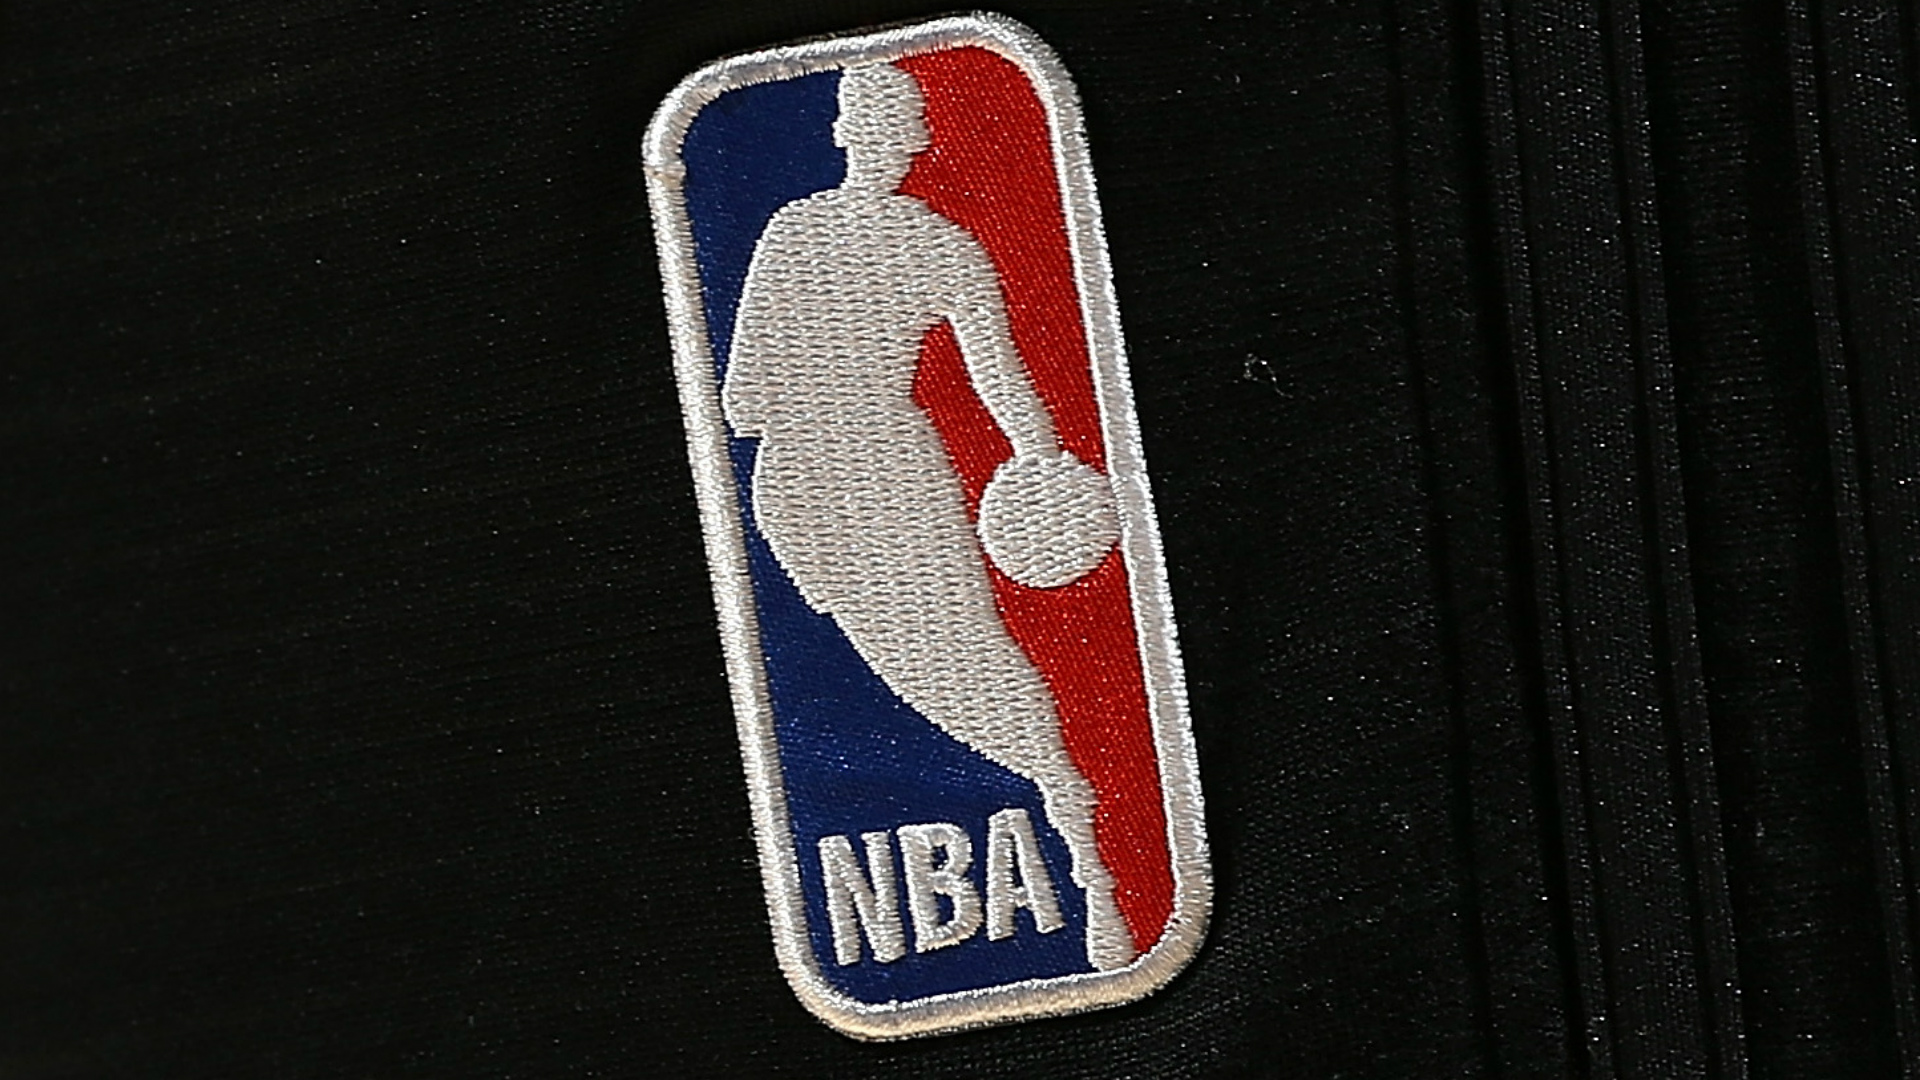 Nba-4317-usnews-getty-ftr_rqqfb3my0geo1gf1sllxa83wa